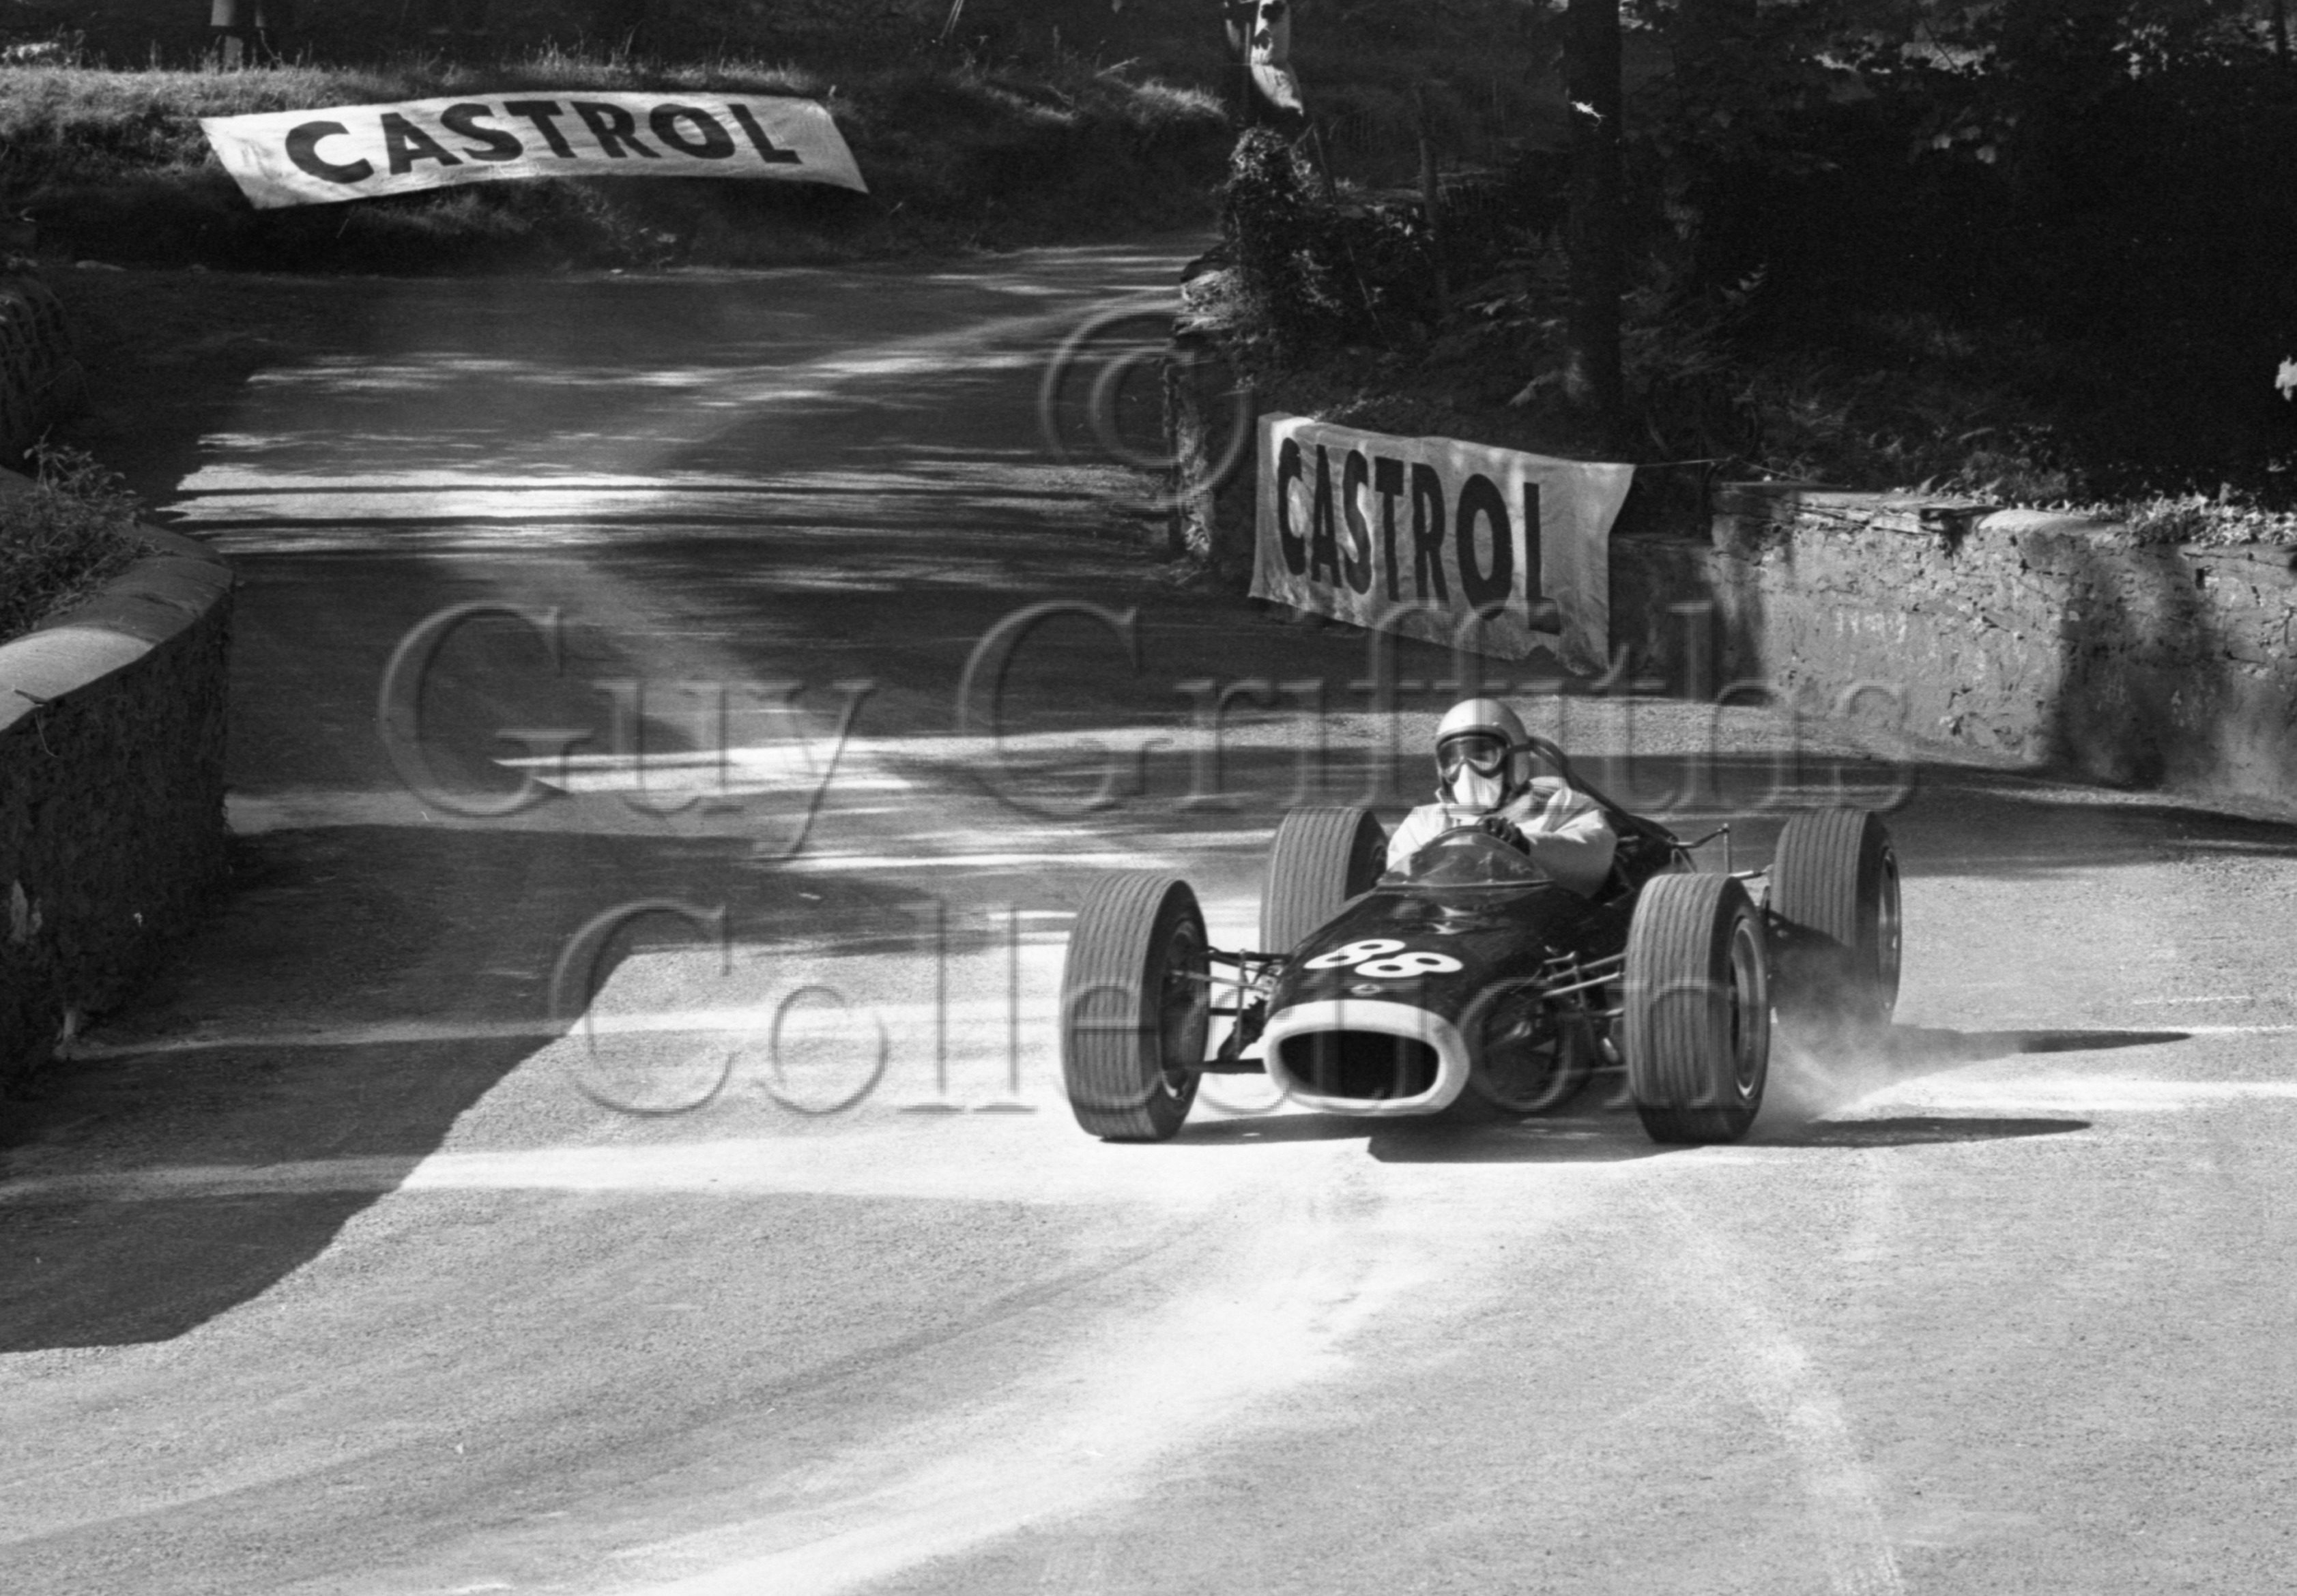 109-163–P-Lawson–BRM–Tholt-y-Will–23-06-1968.jpg - The Guy Griffiths Collection